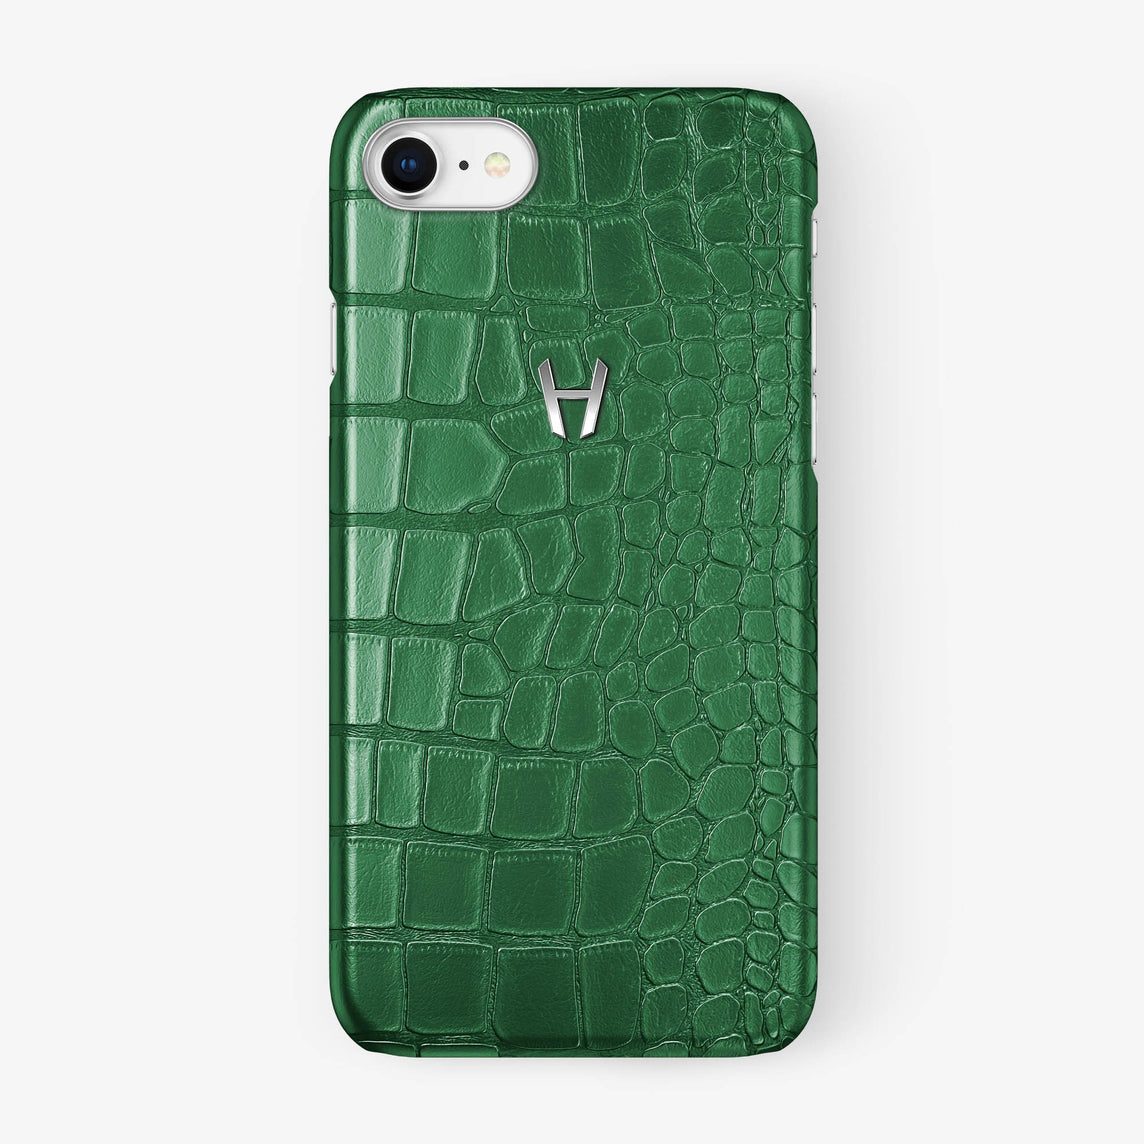 Alligator Case iPhone 7/8 | Green - Stainless Steel - Hadoro